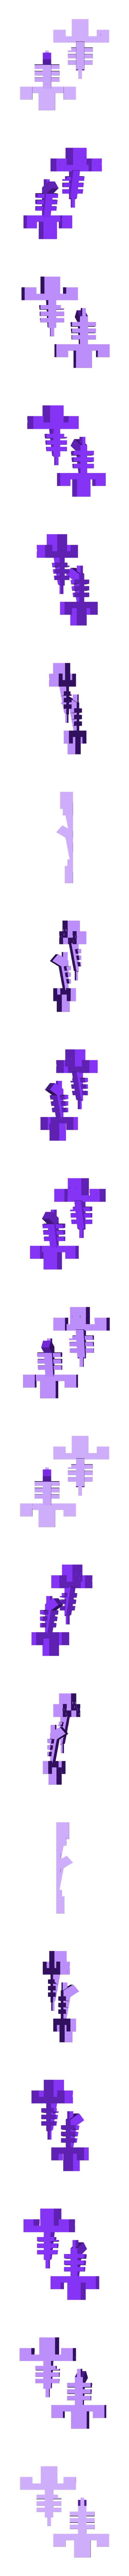 QueeenWither.stl Download free STL file Complete Minecraft Chess Set • Model to 3D print, Hardcore3D